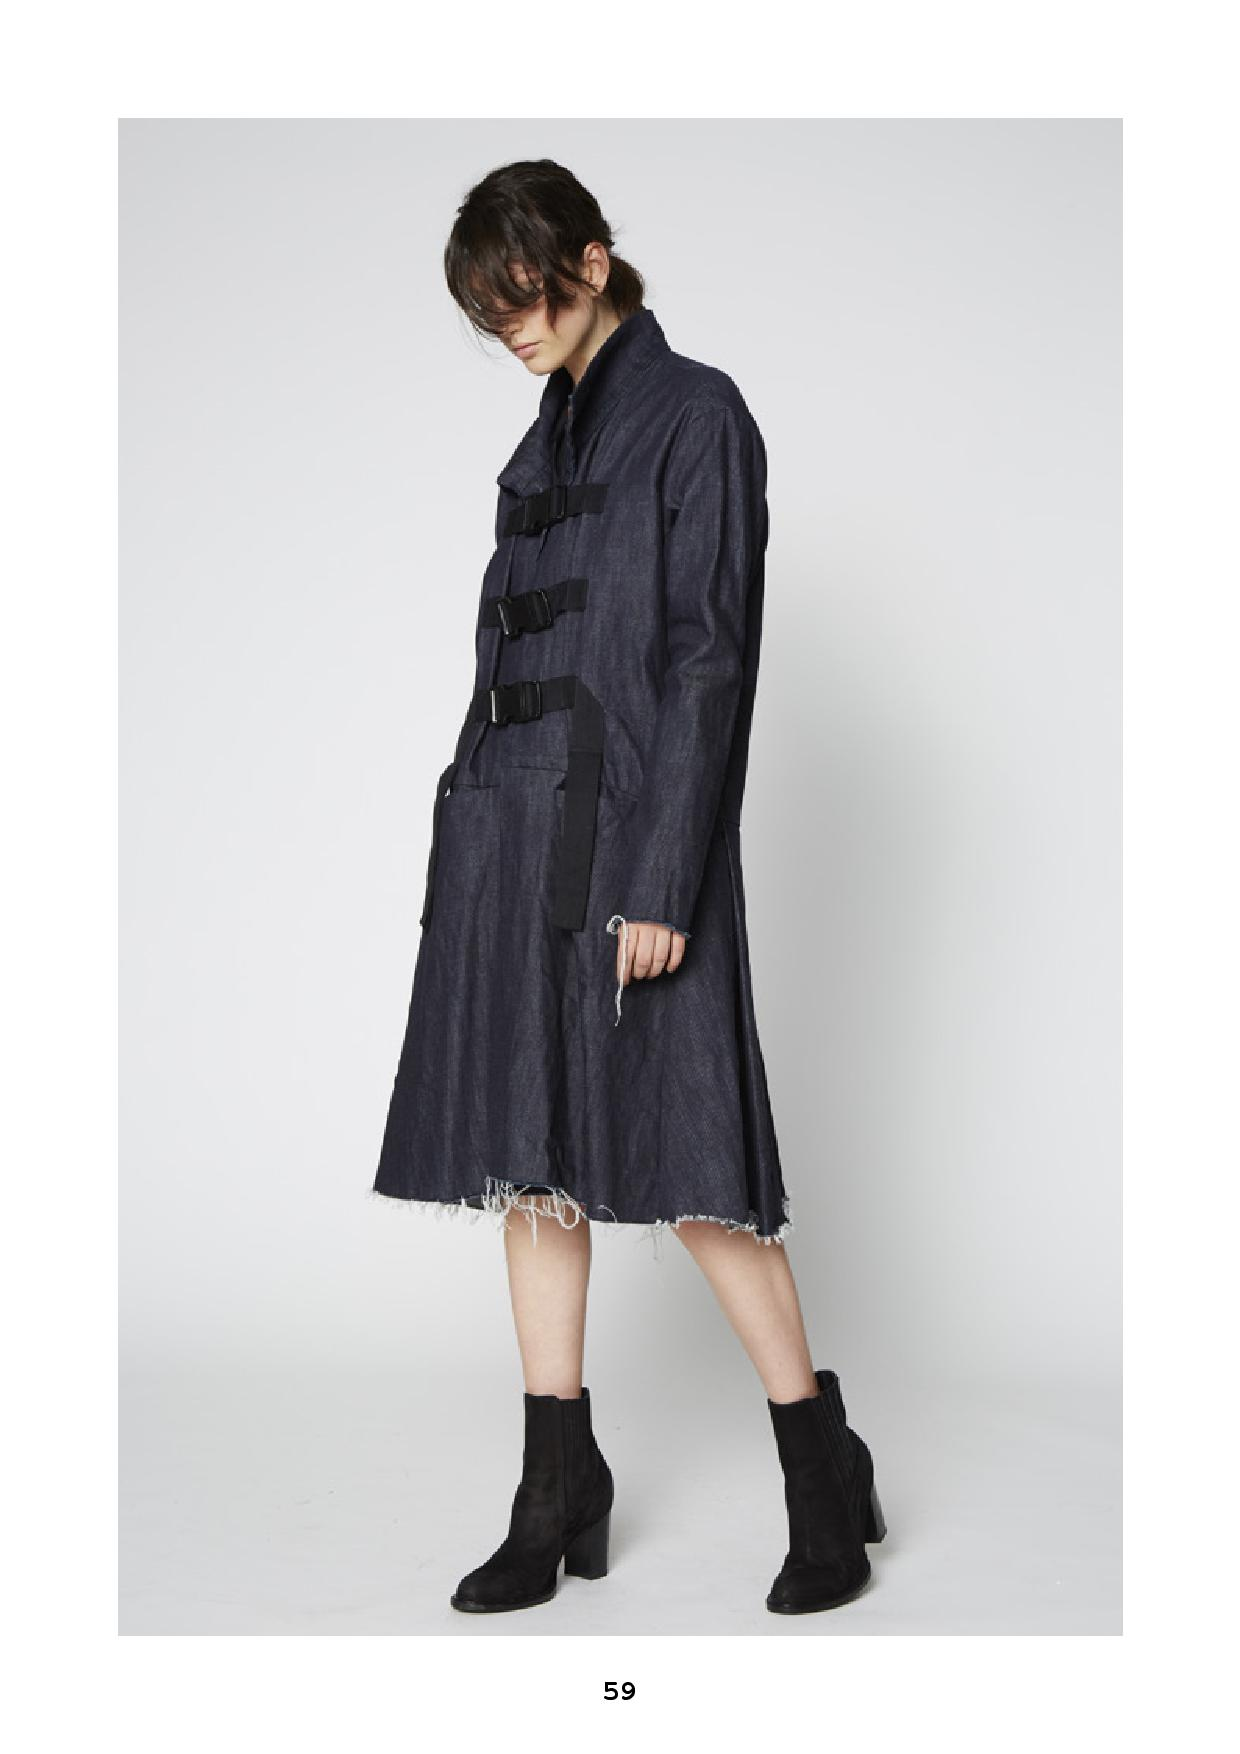 aw17 women s keypieces-page-060